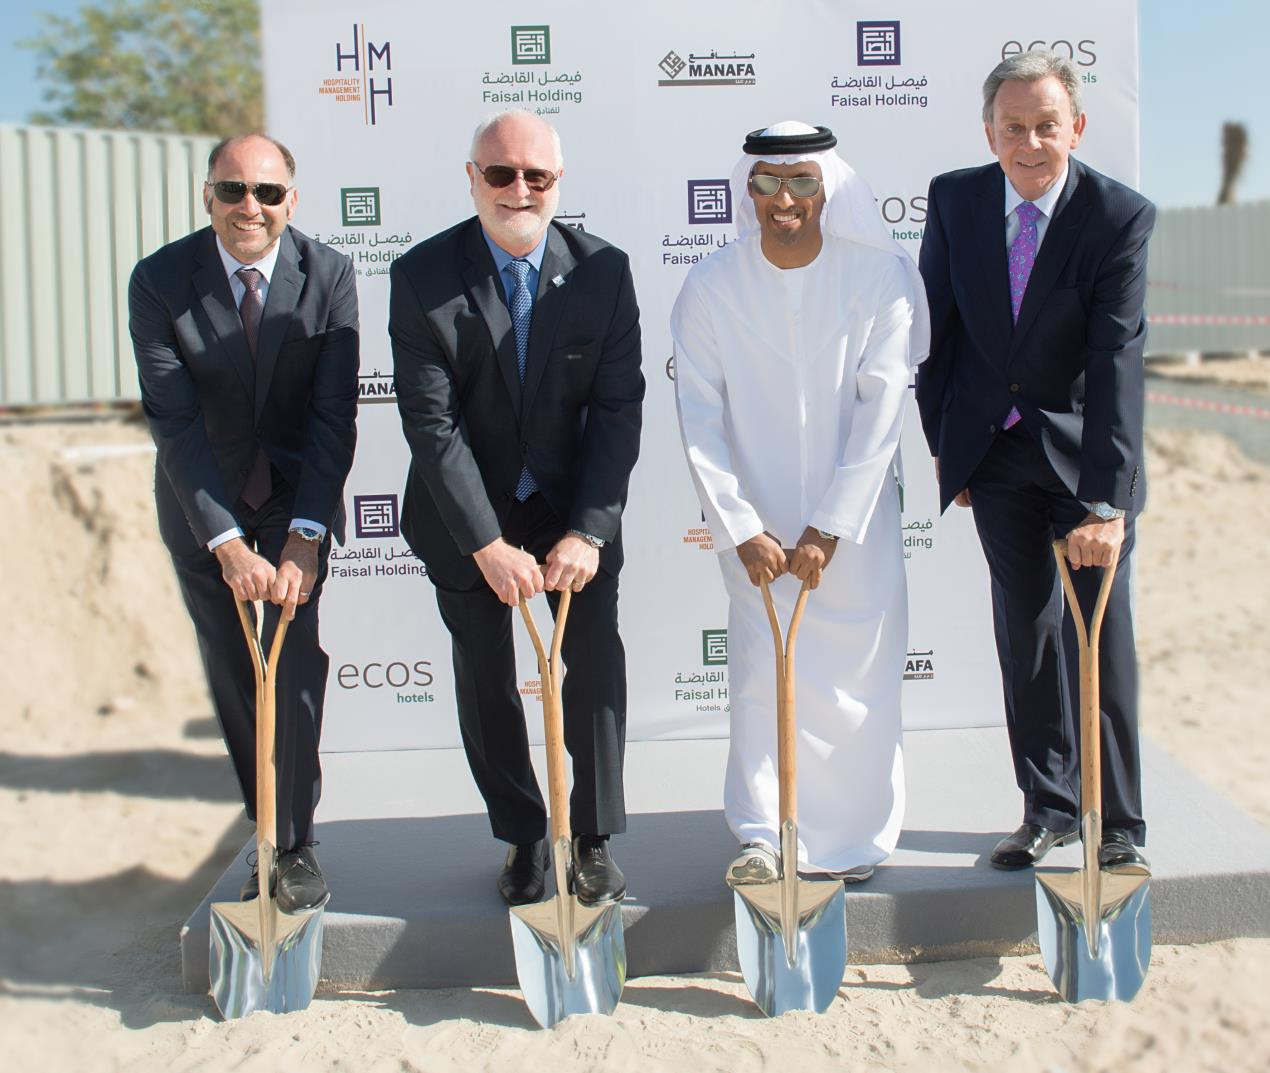 HMH – Hospitality Management Holding announces the operation of ECOS Hotel